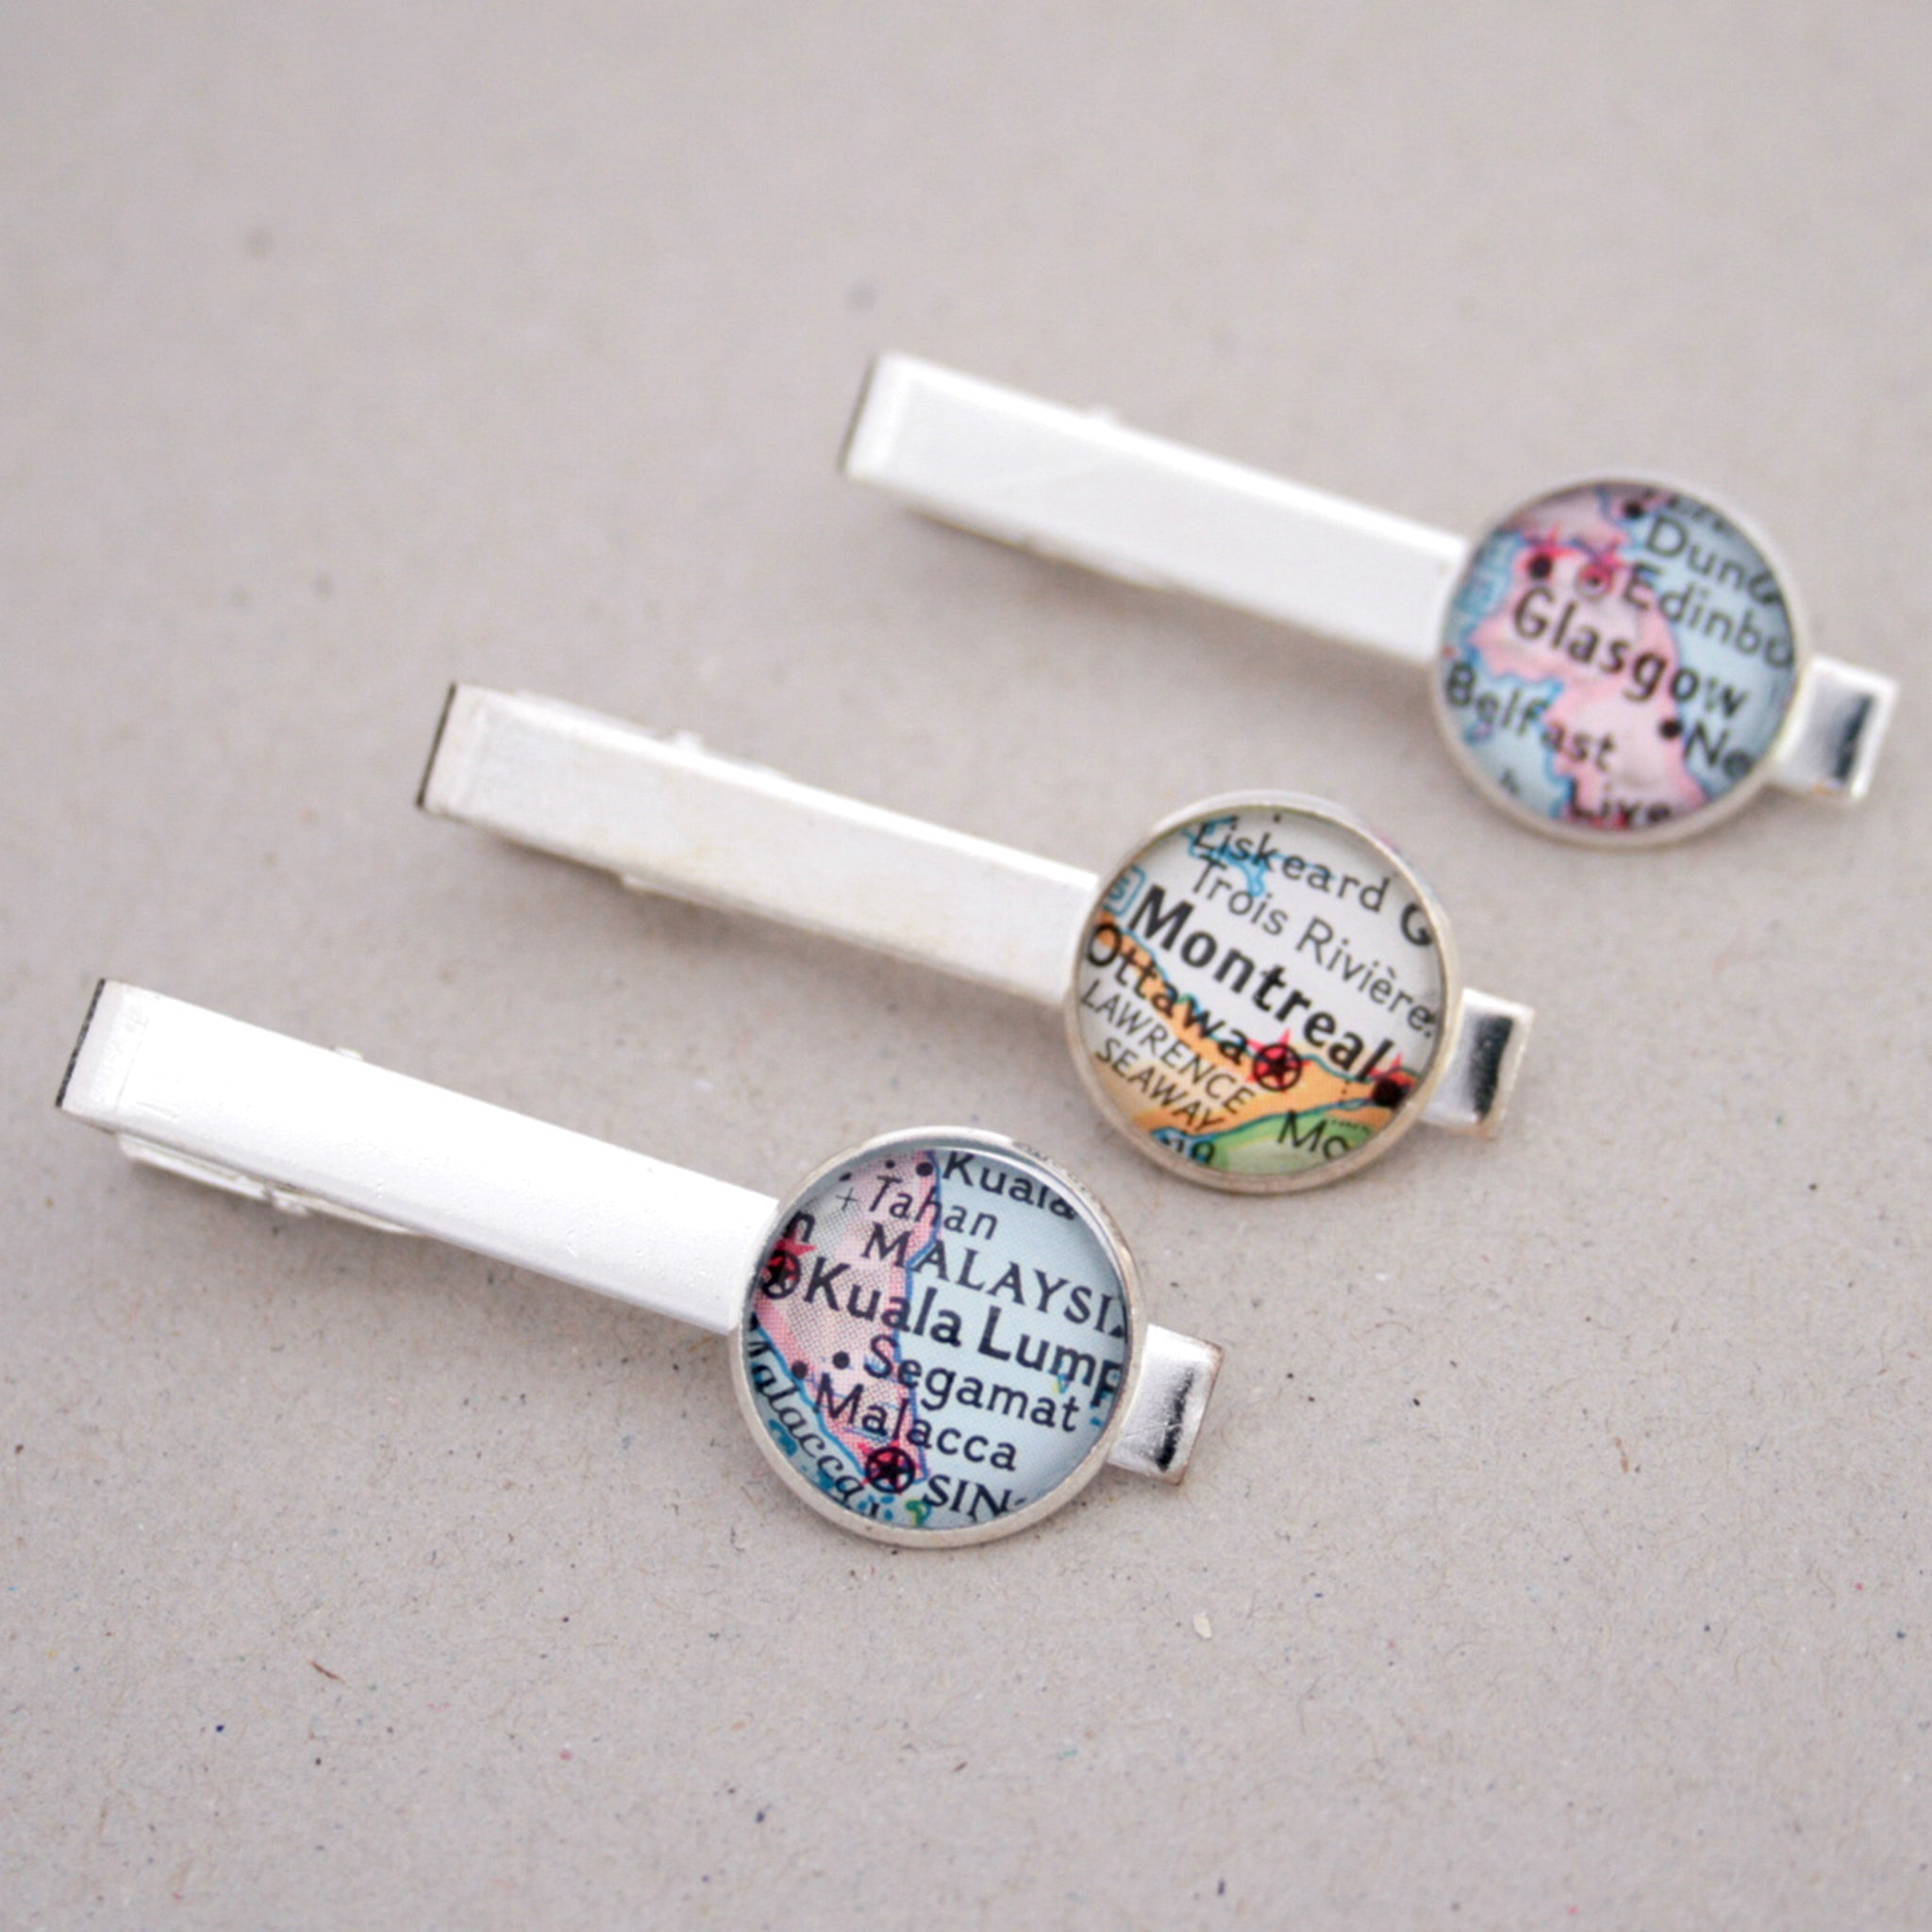 Three personalised tie clips in silver color featuring selection of maps